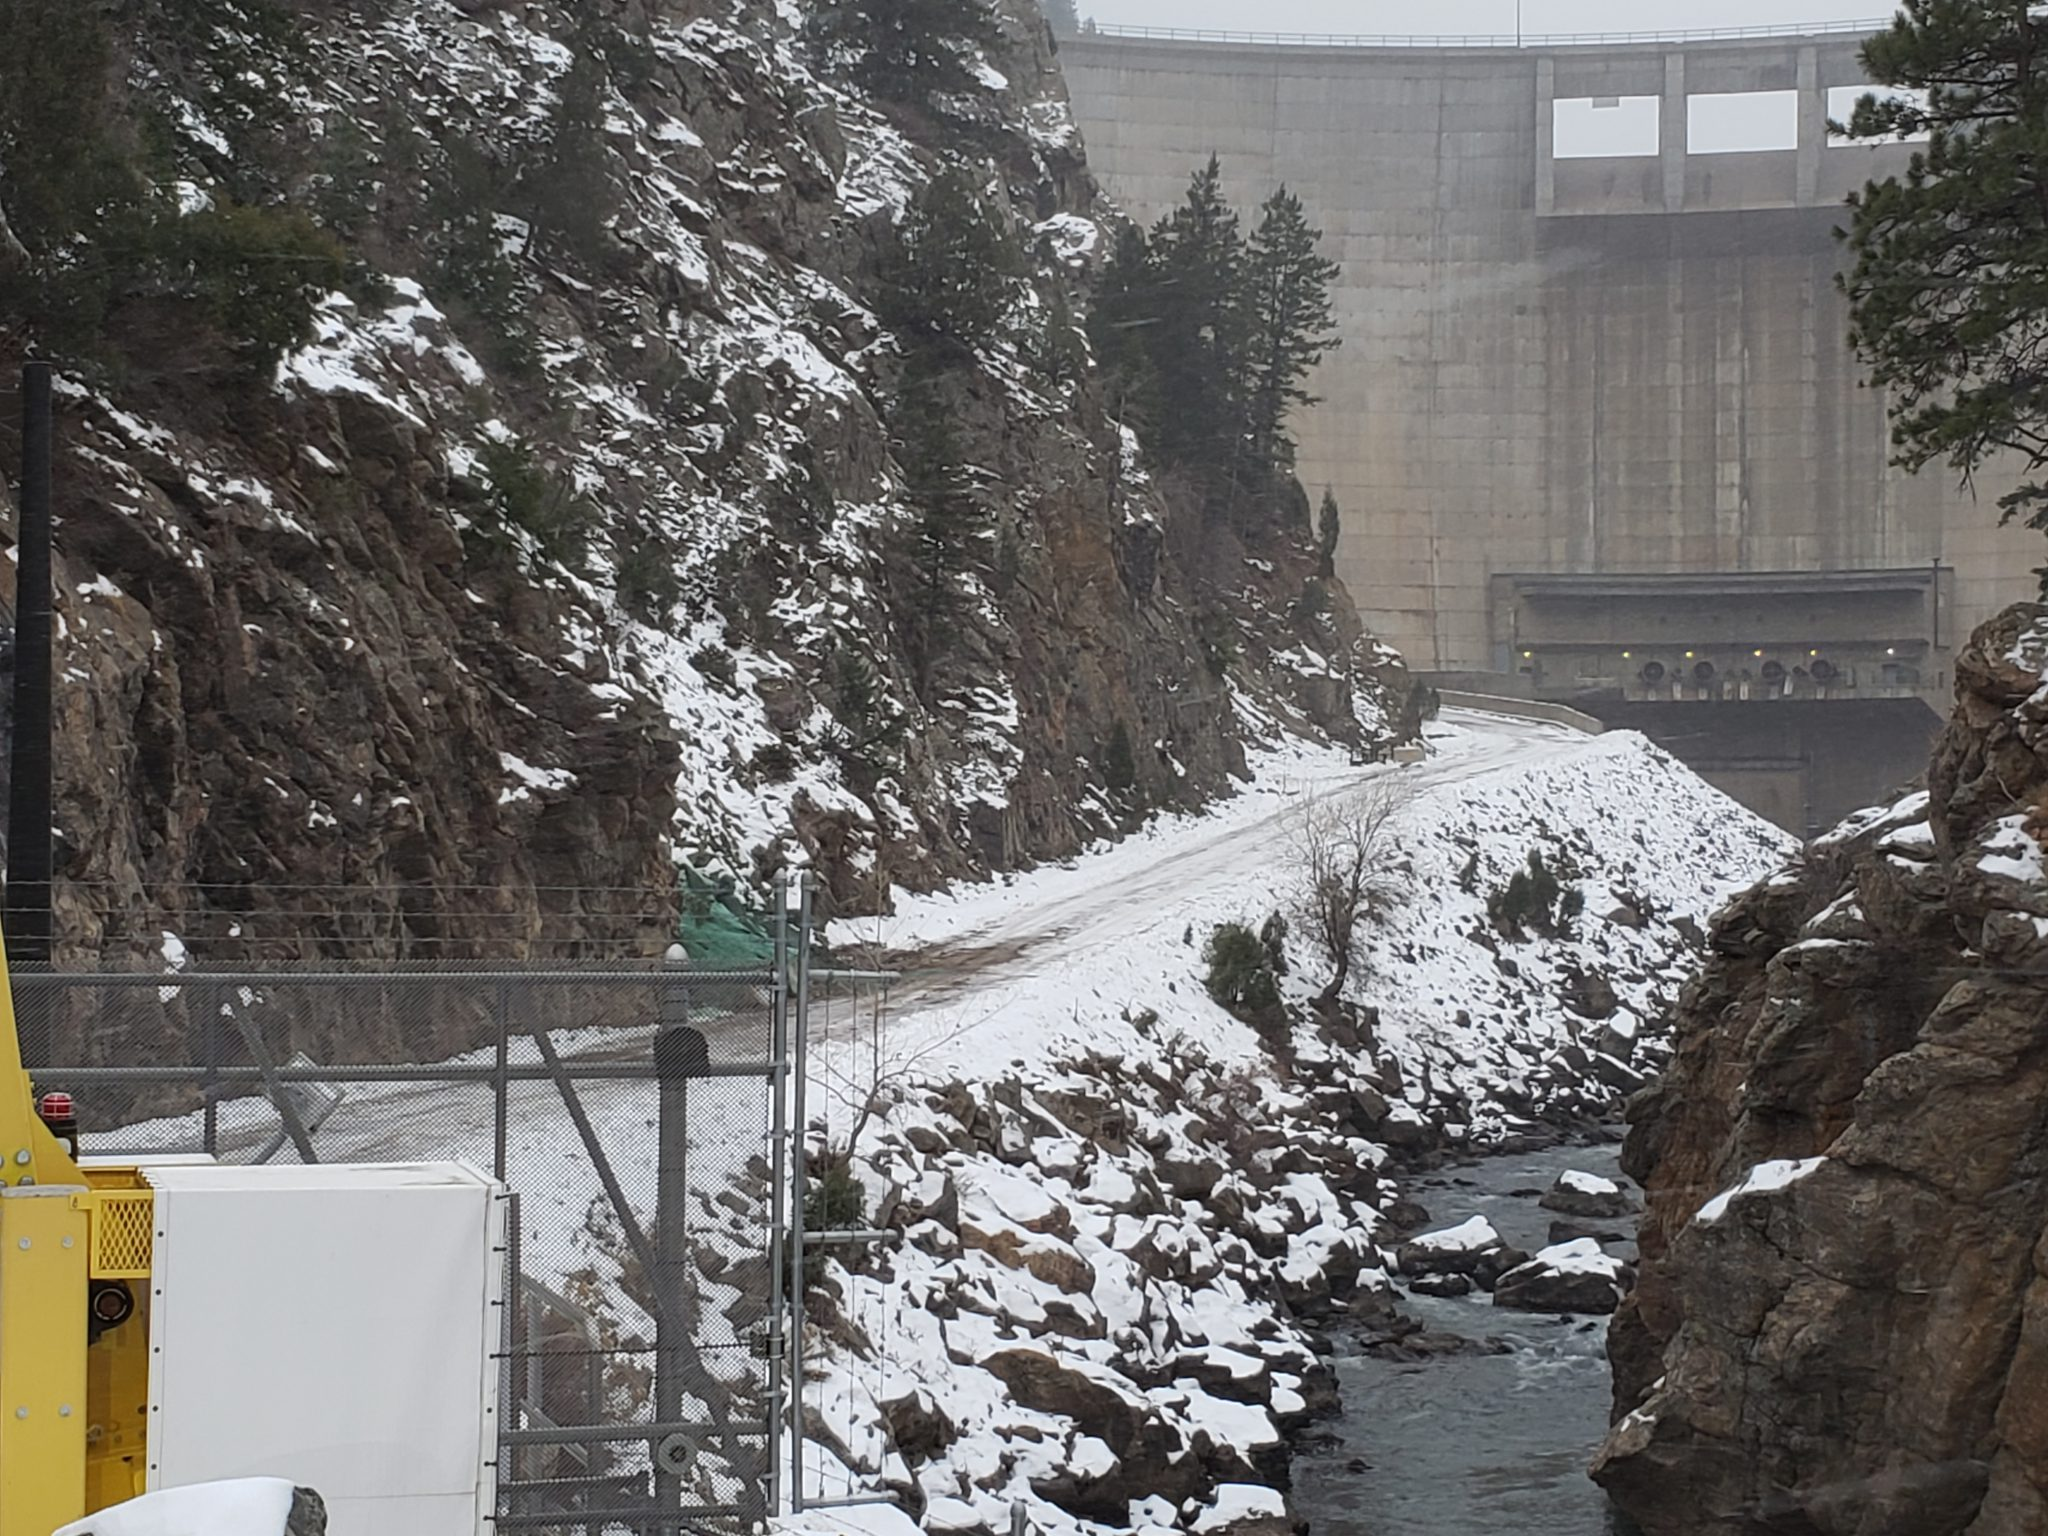 Waterton Canyon Dam Denver Water